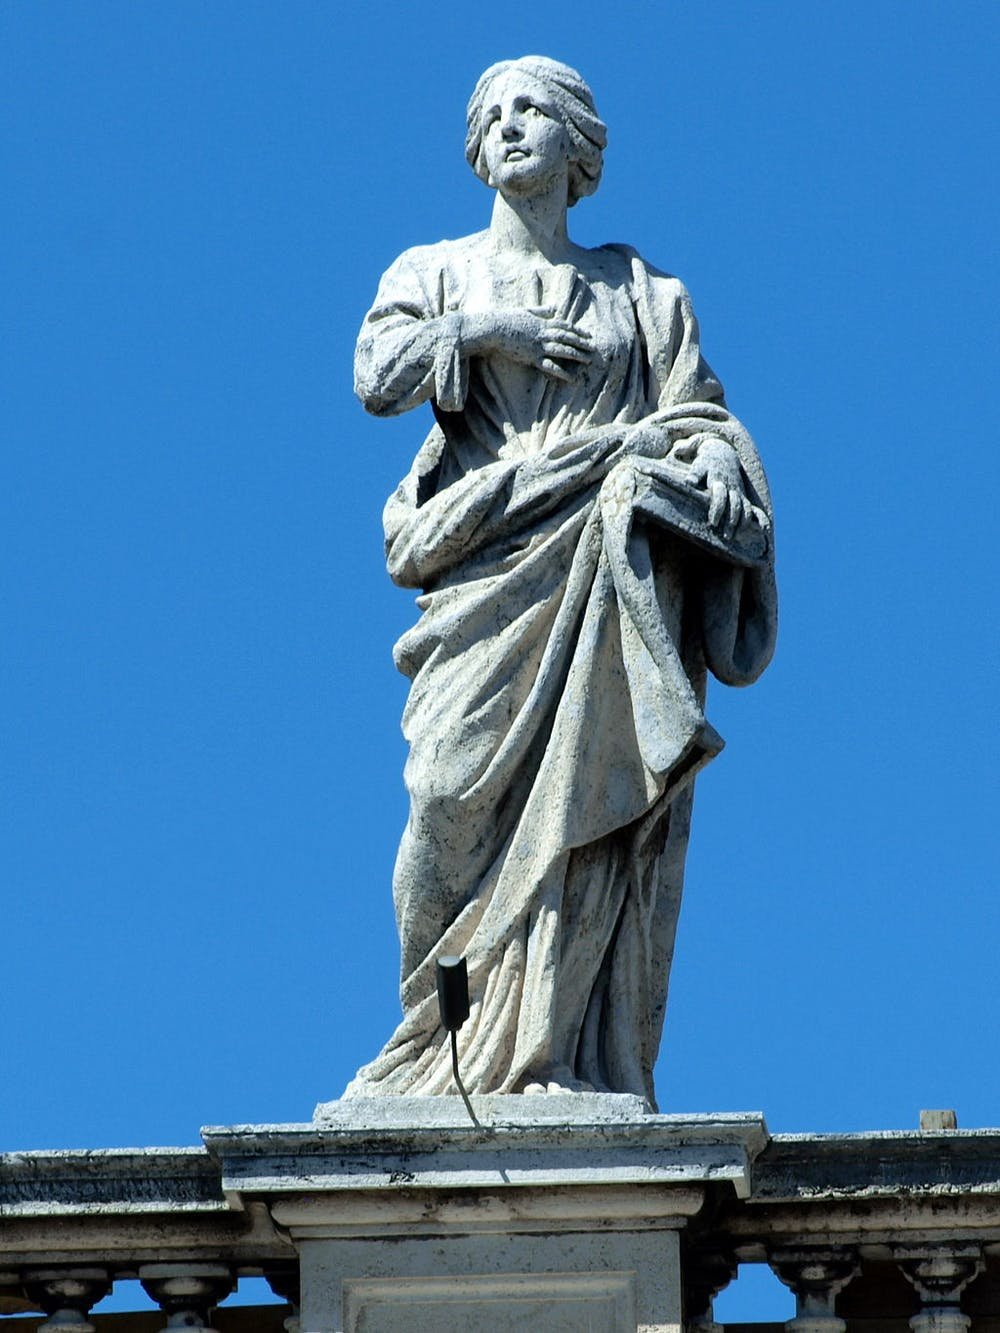 a statue of a woman in robes clutching a hand to her breast with a blue sky behind her